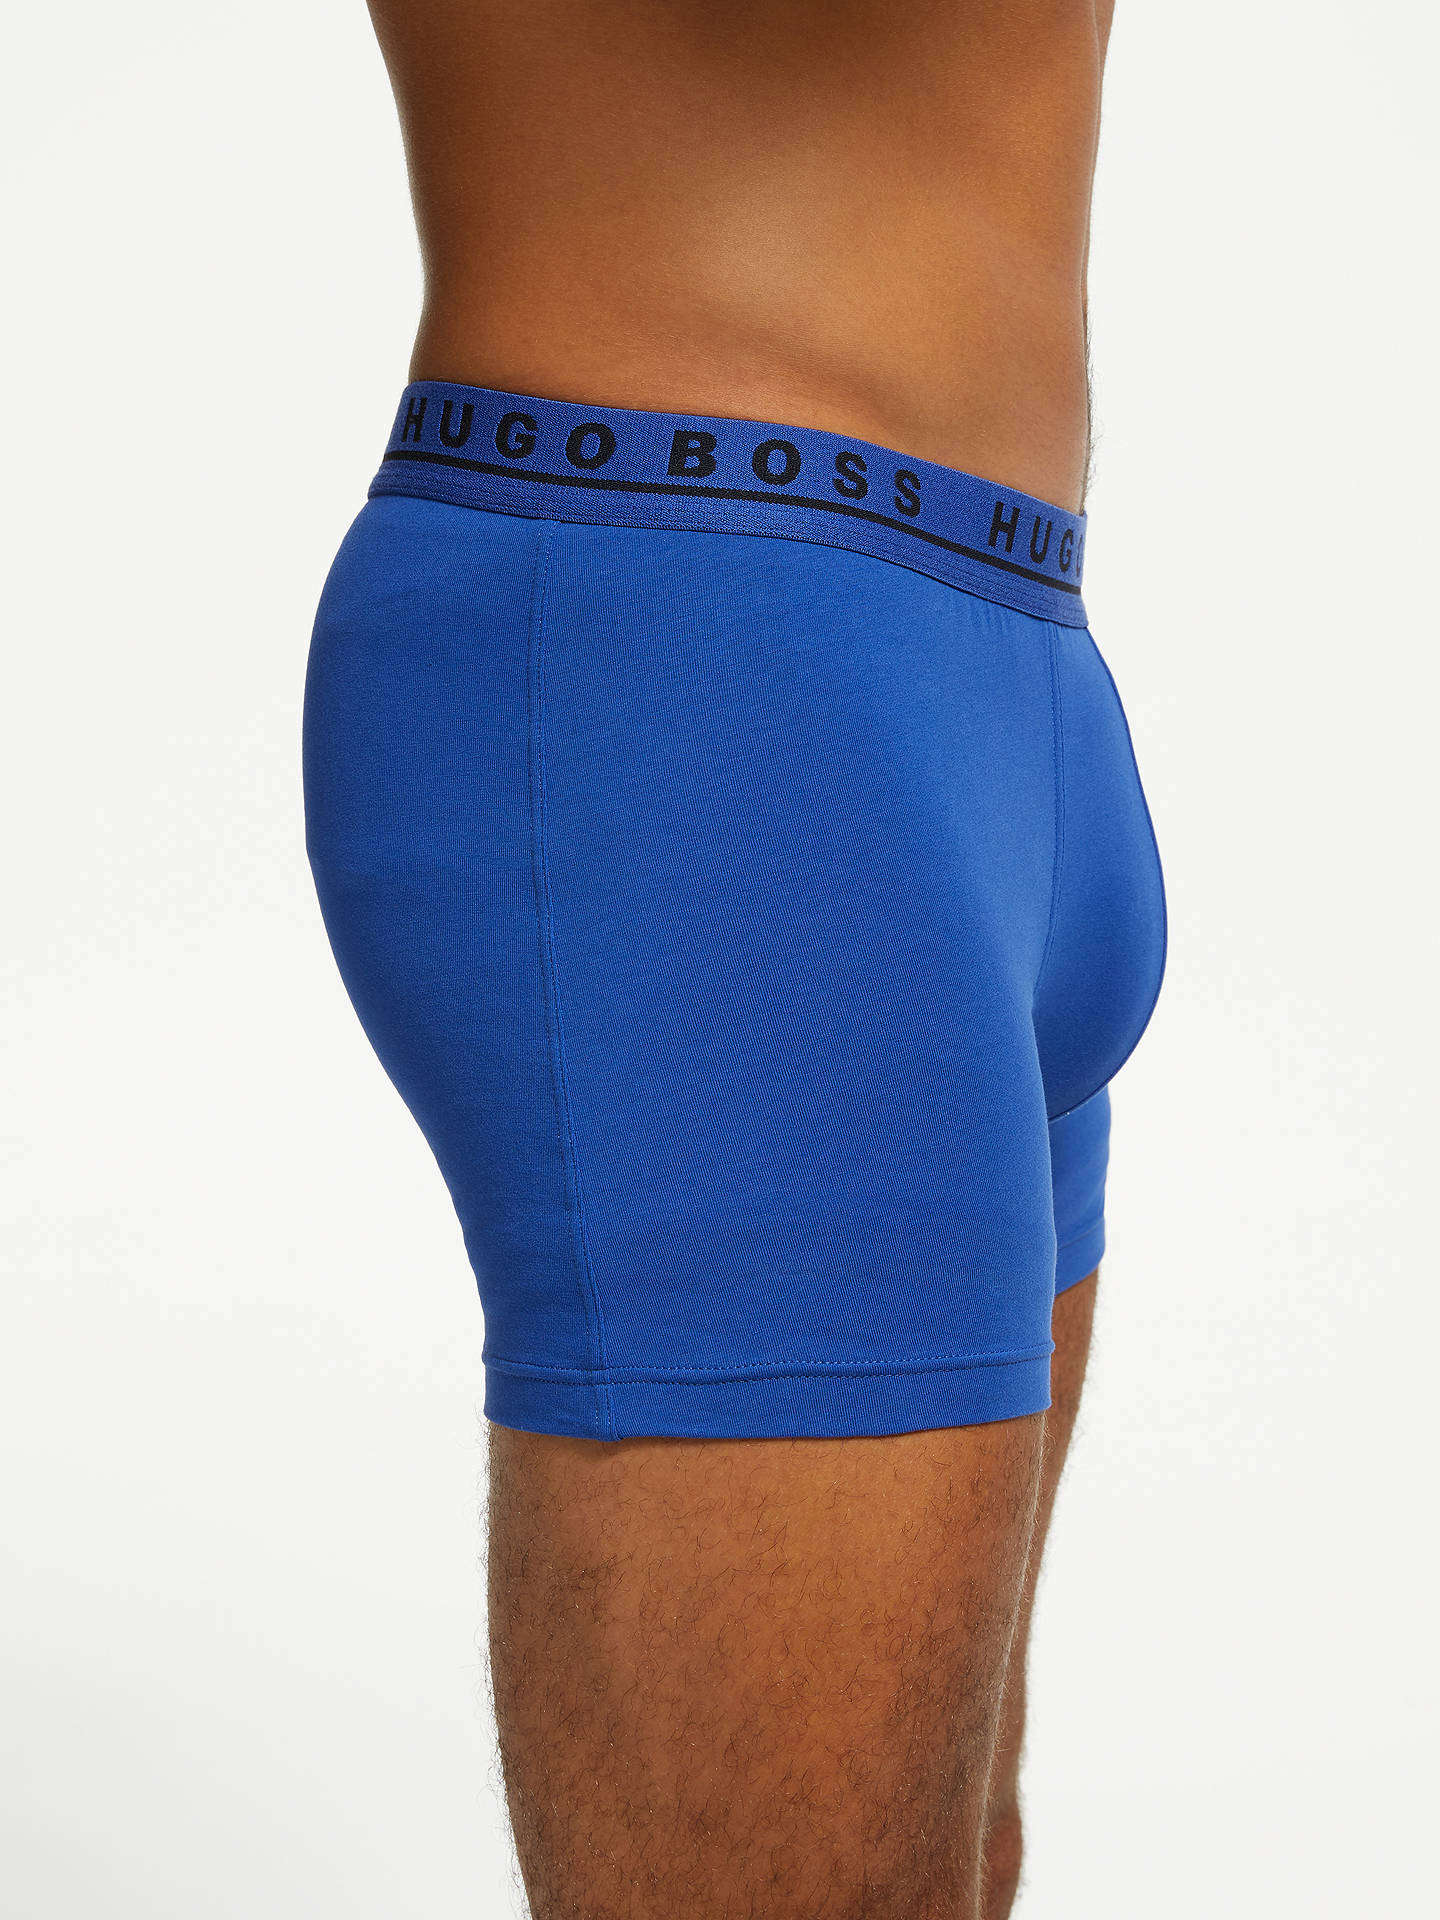 BuyBOSS Stretch Cotton Trunks, Pack of 3, Navy/Grey/Blue, S Online at johnlewis.com